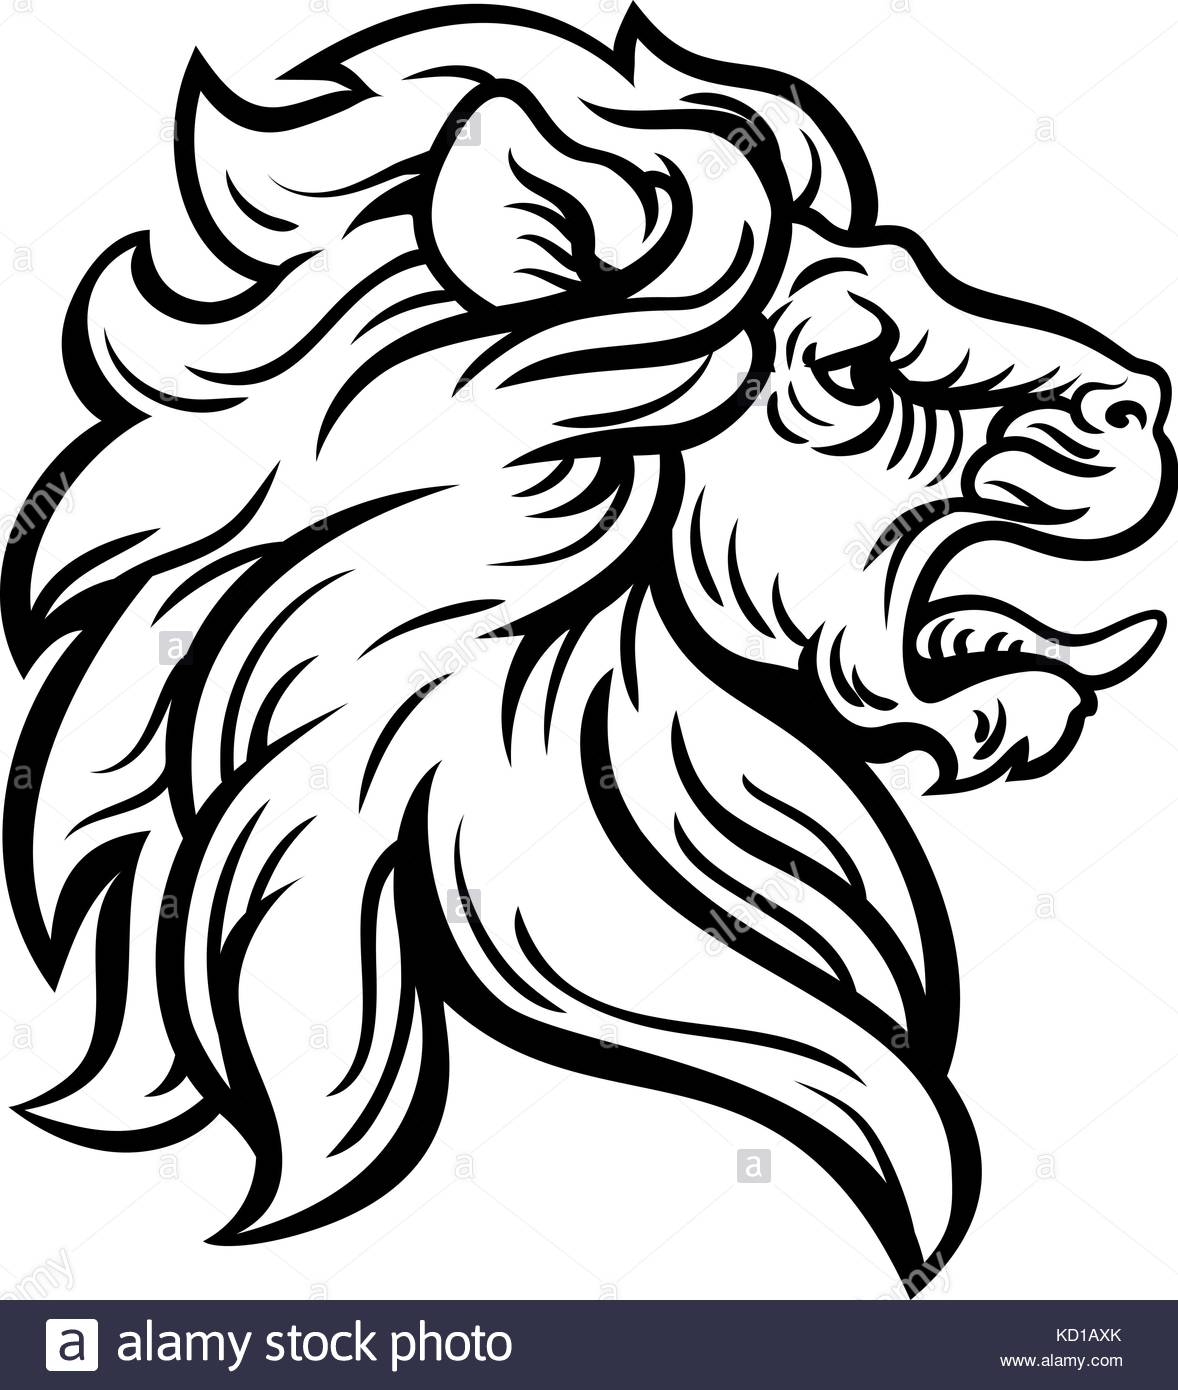 1178x1390 Lion Head Side Profile Stock Photos Amp Lion Head Side Profile Stock